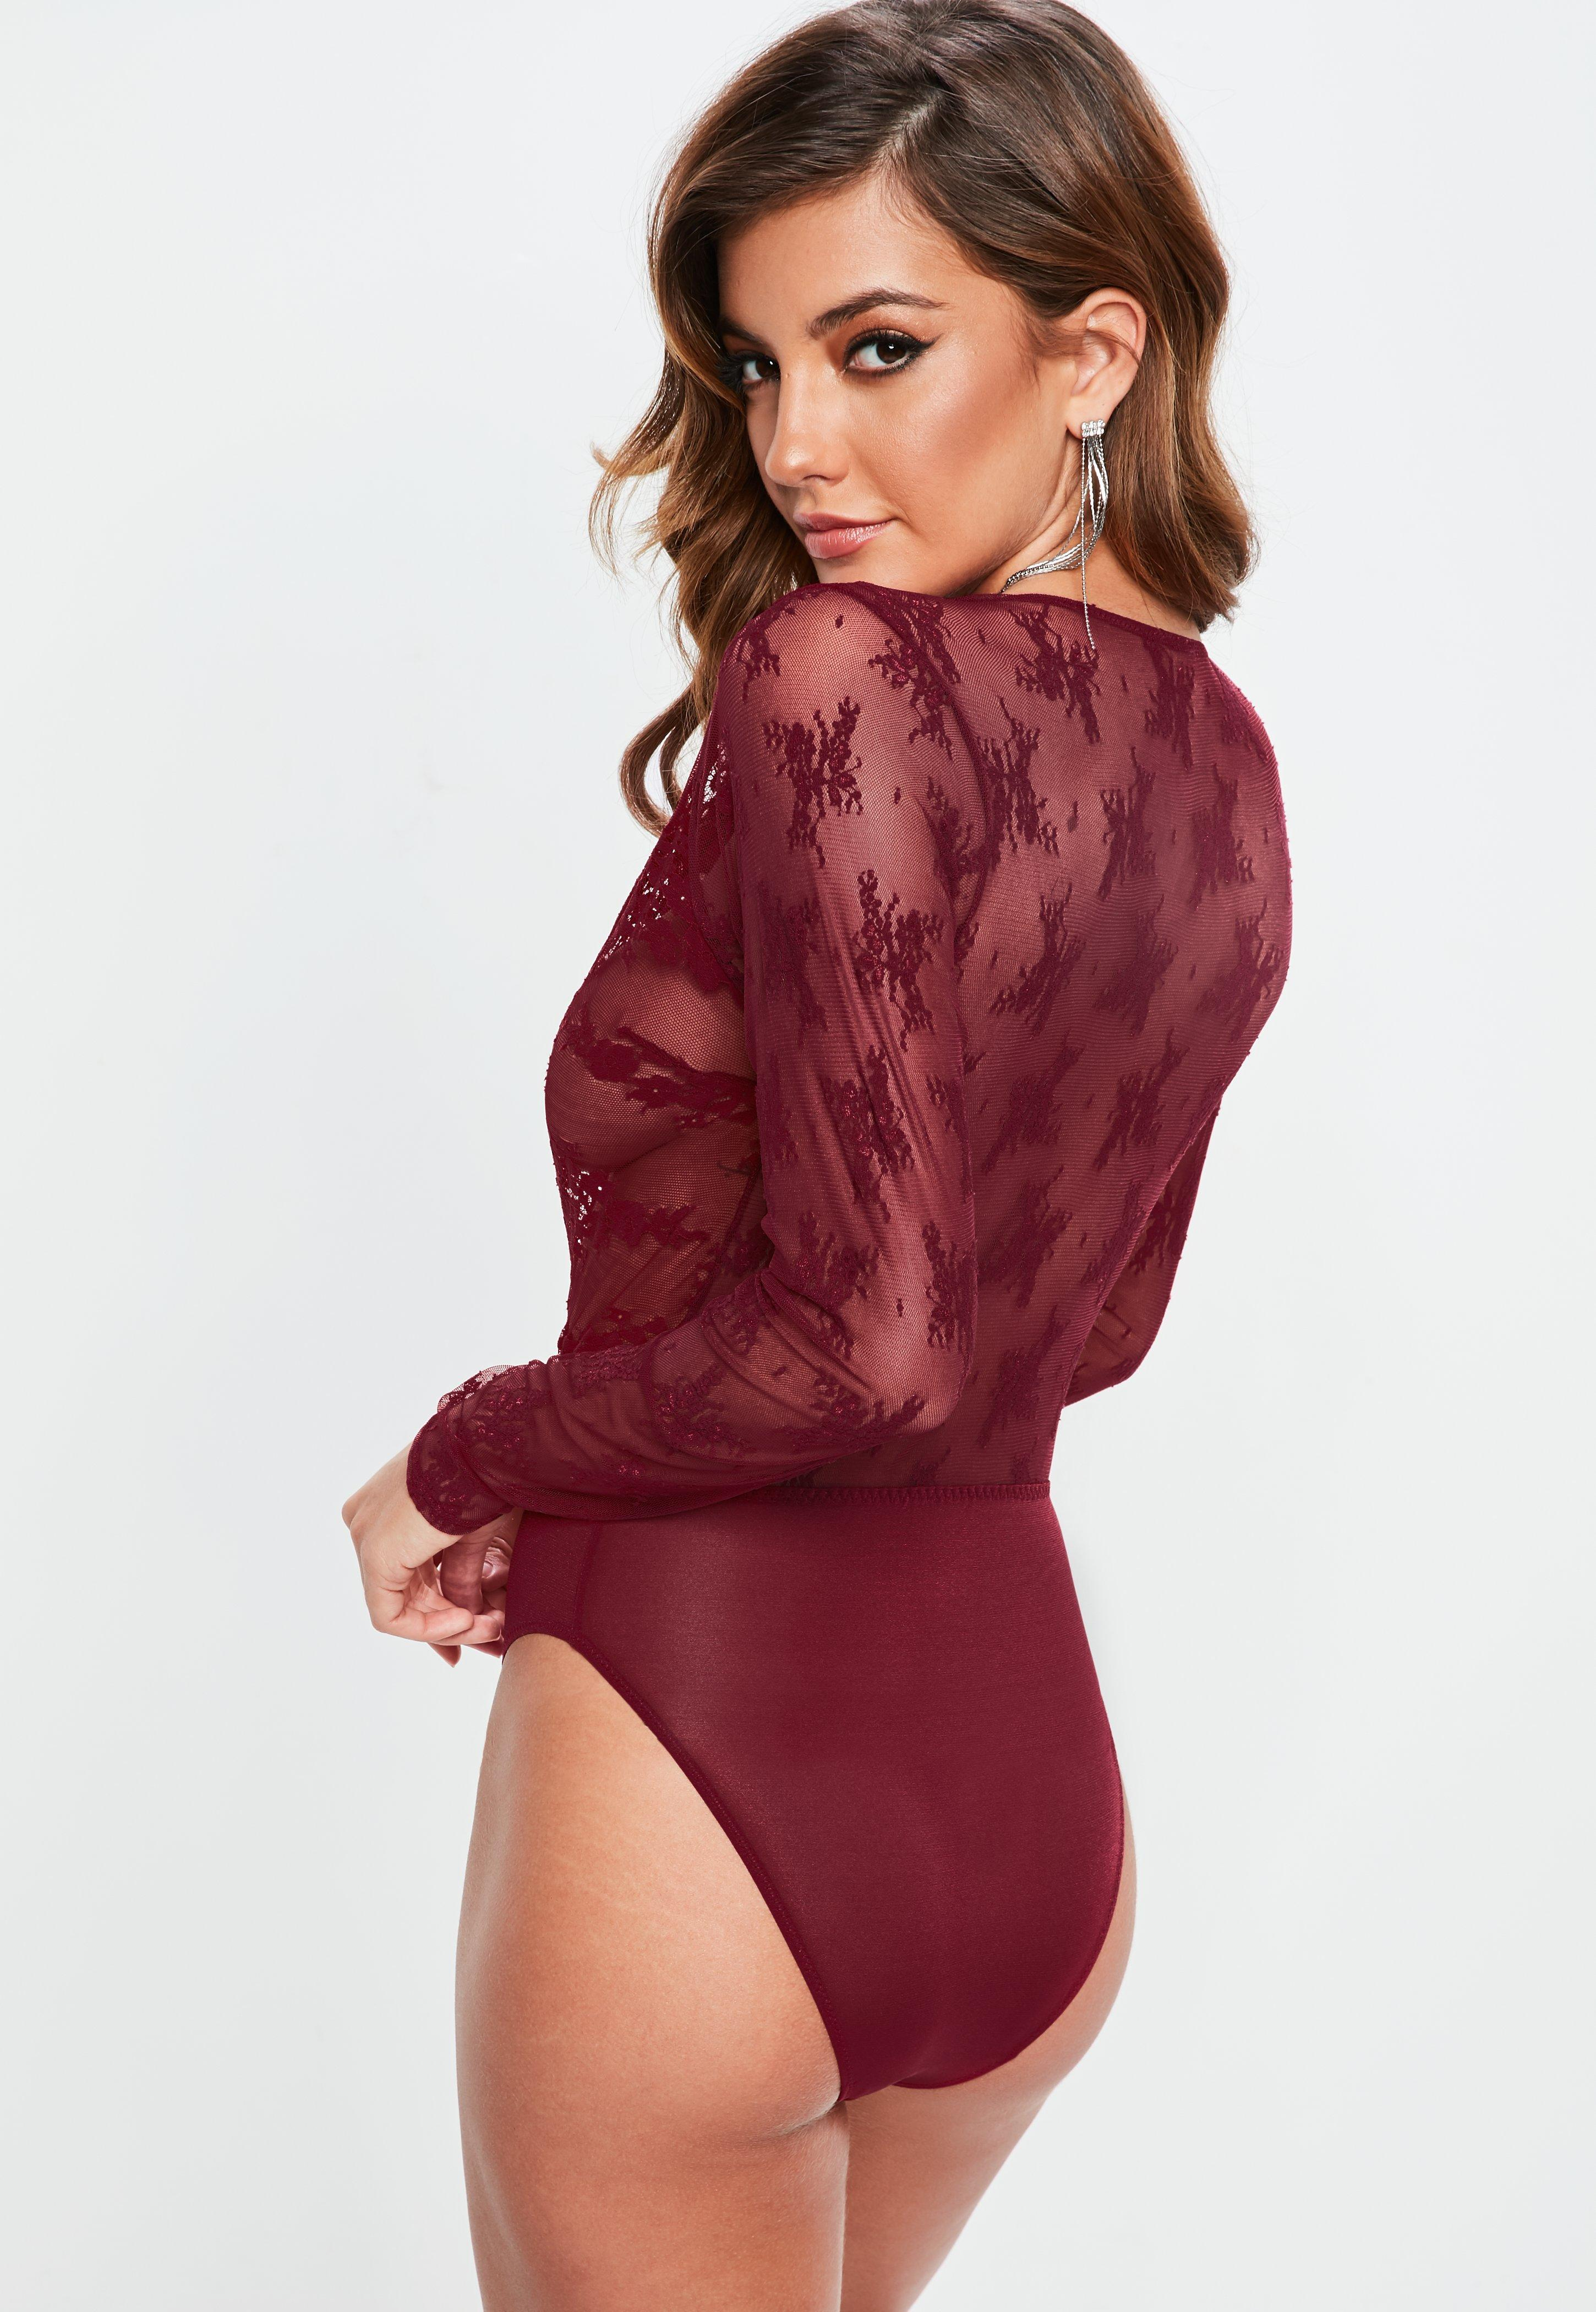 a8f4ce4059 Lyst - Missguided Burgundy Eyelash Lace Extreme Plunge Bodysuit in Red